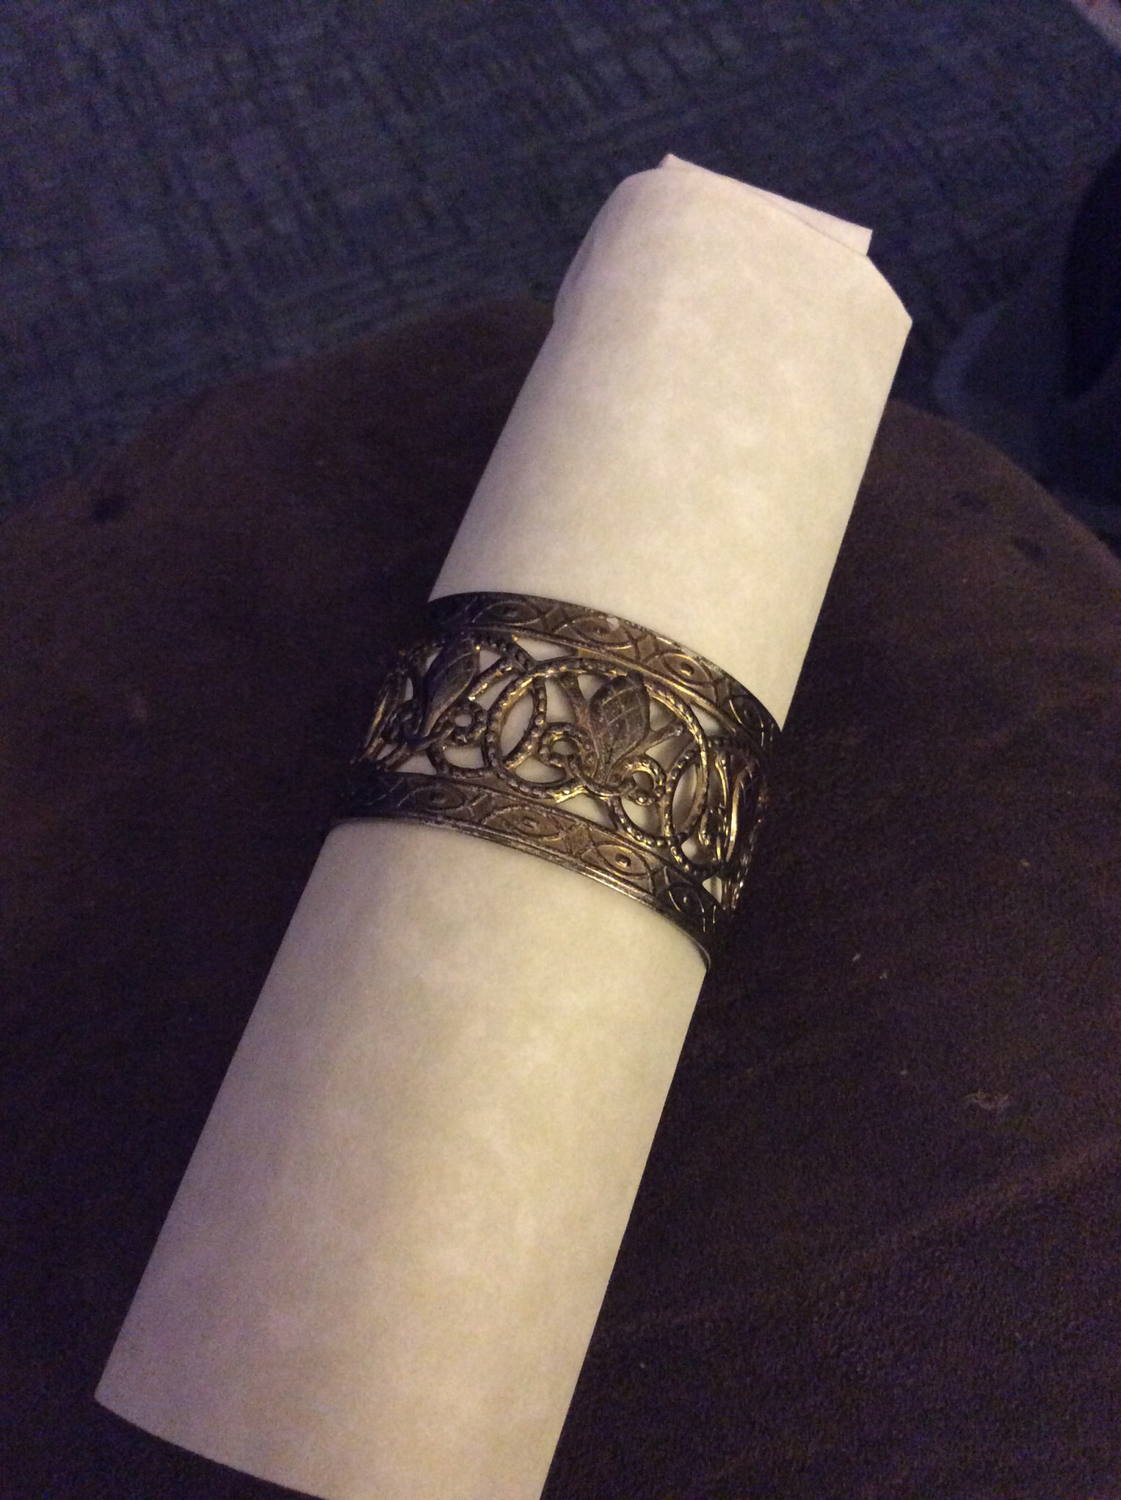 Napkin ring to hold paper scroll Promote restore peace in thy family